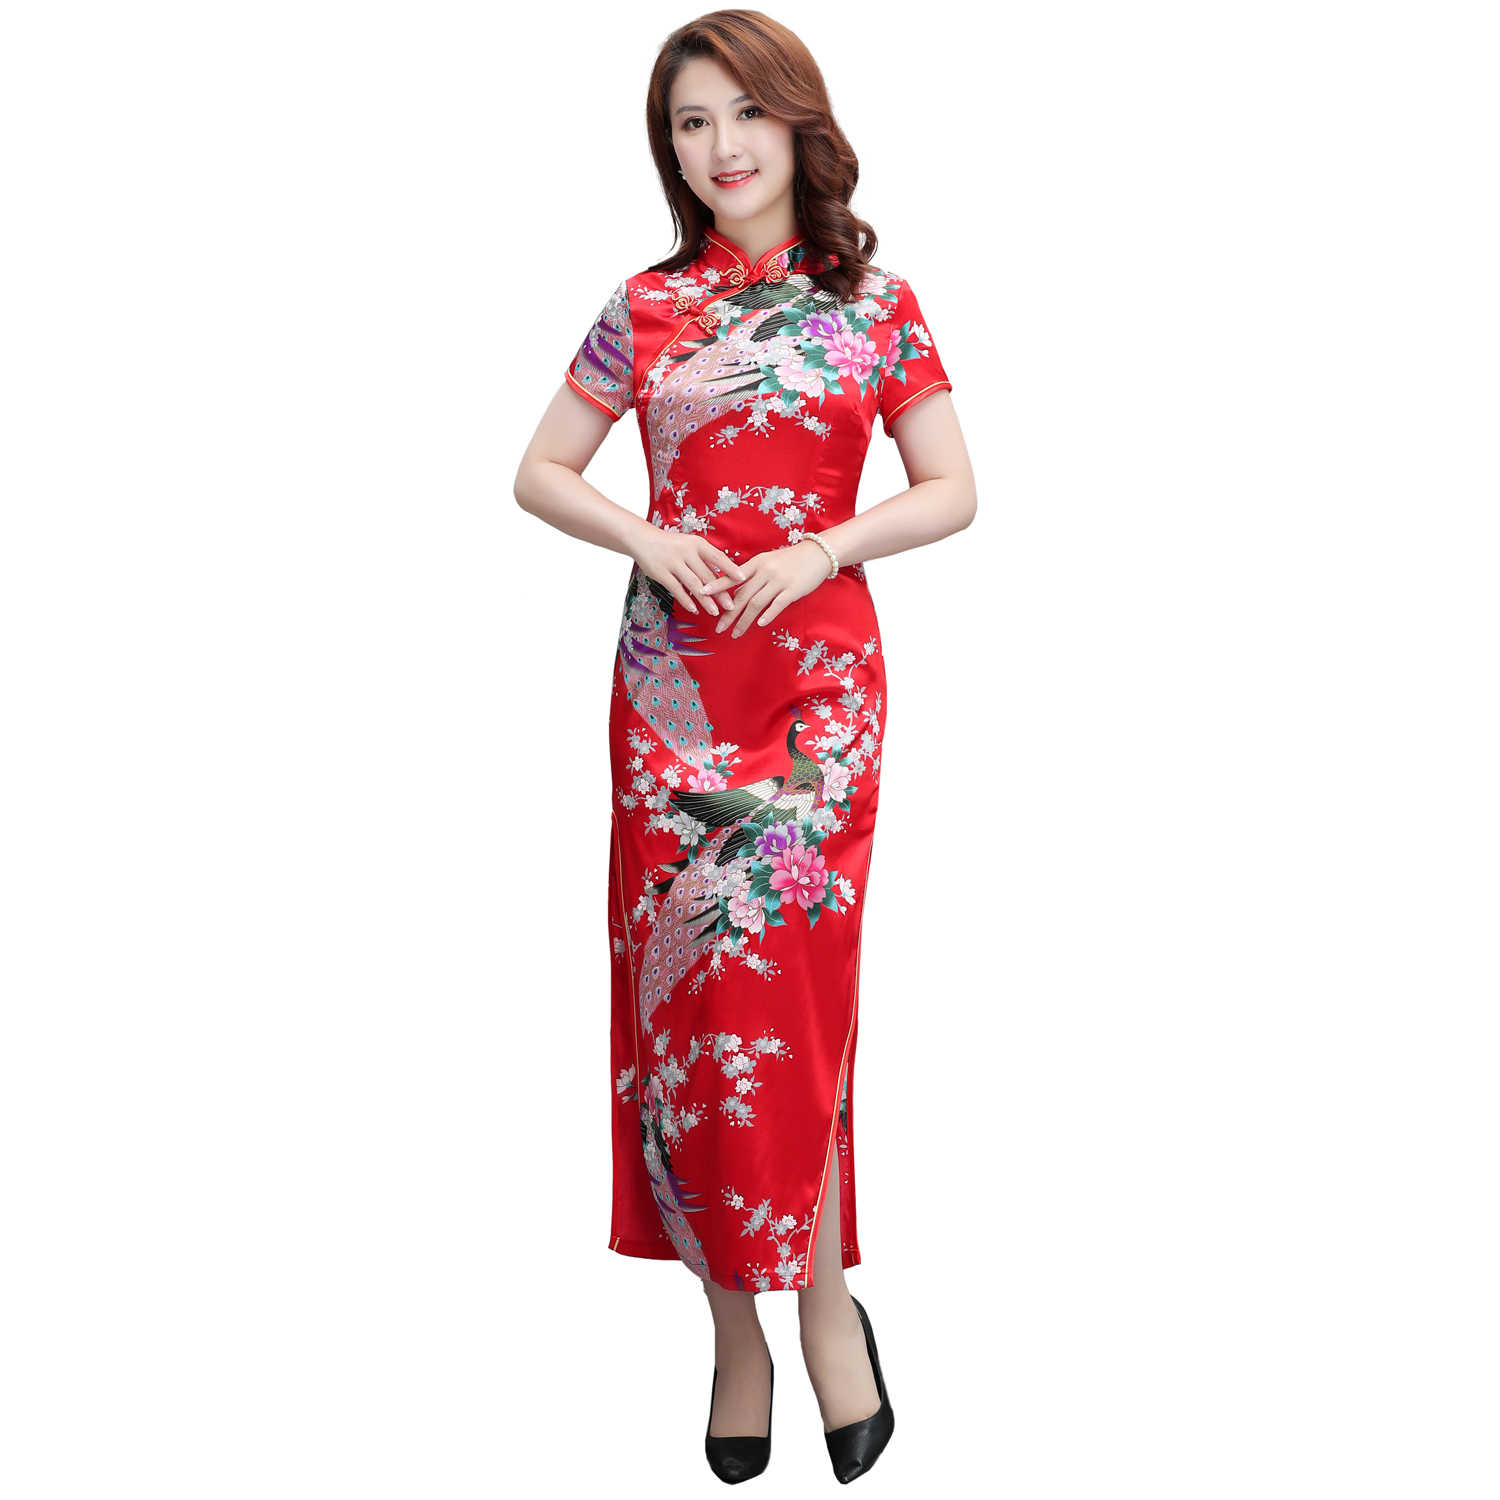 b496f9f5d4 Hot Pink Asian Women Elegant Evening Party Dress Vintage Chinese Style  Rayon Cheongsam Big Size XXXL Classic Qipao Vestidos